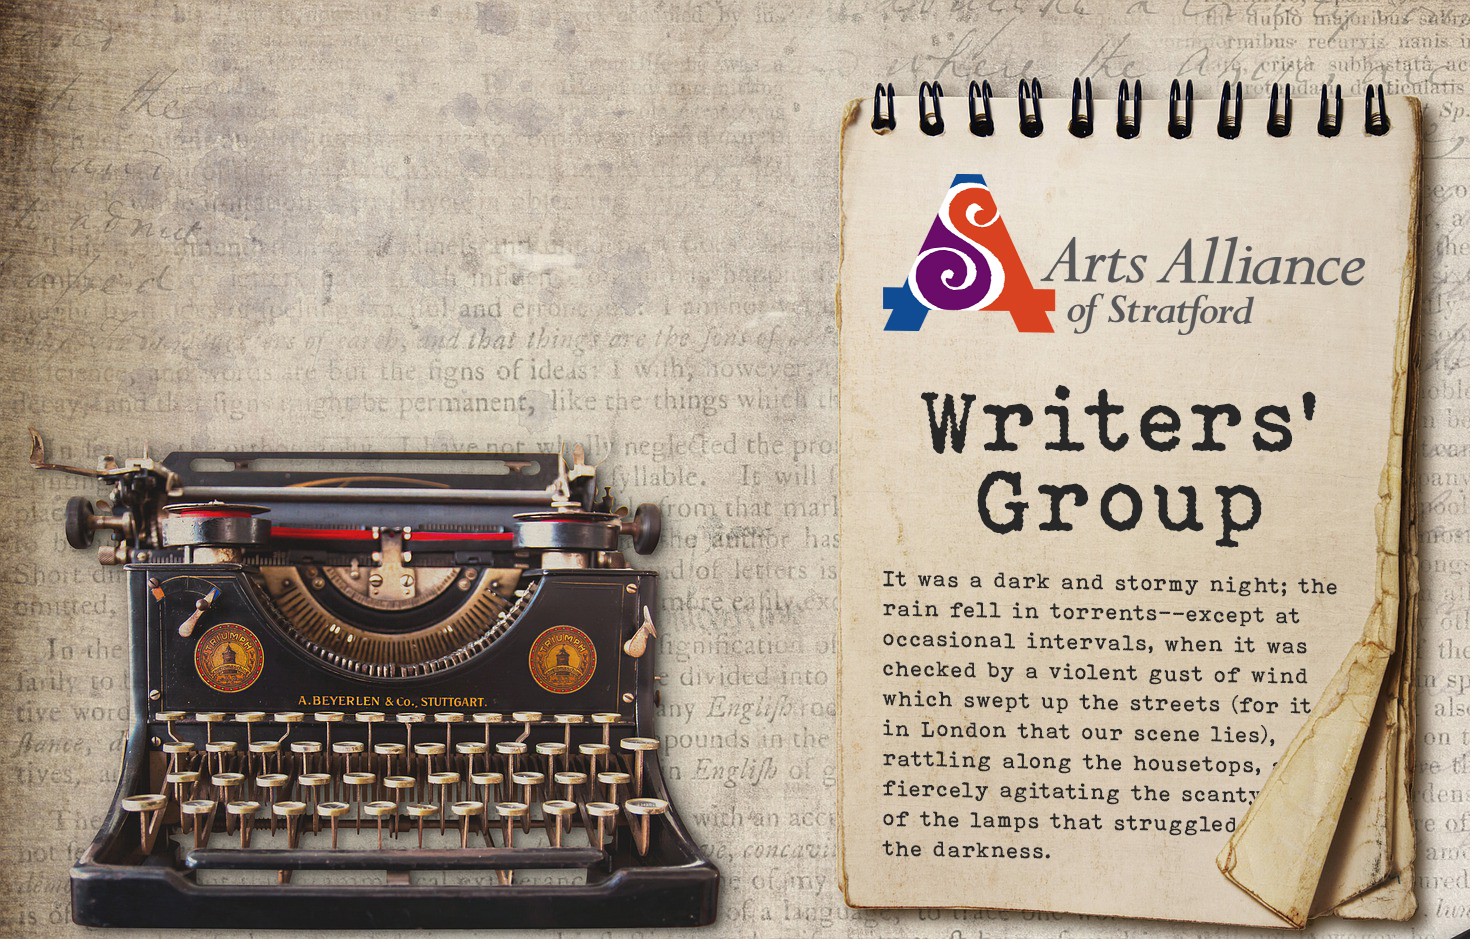 Arts Alliance of Stratford Writers' Group